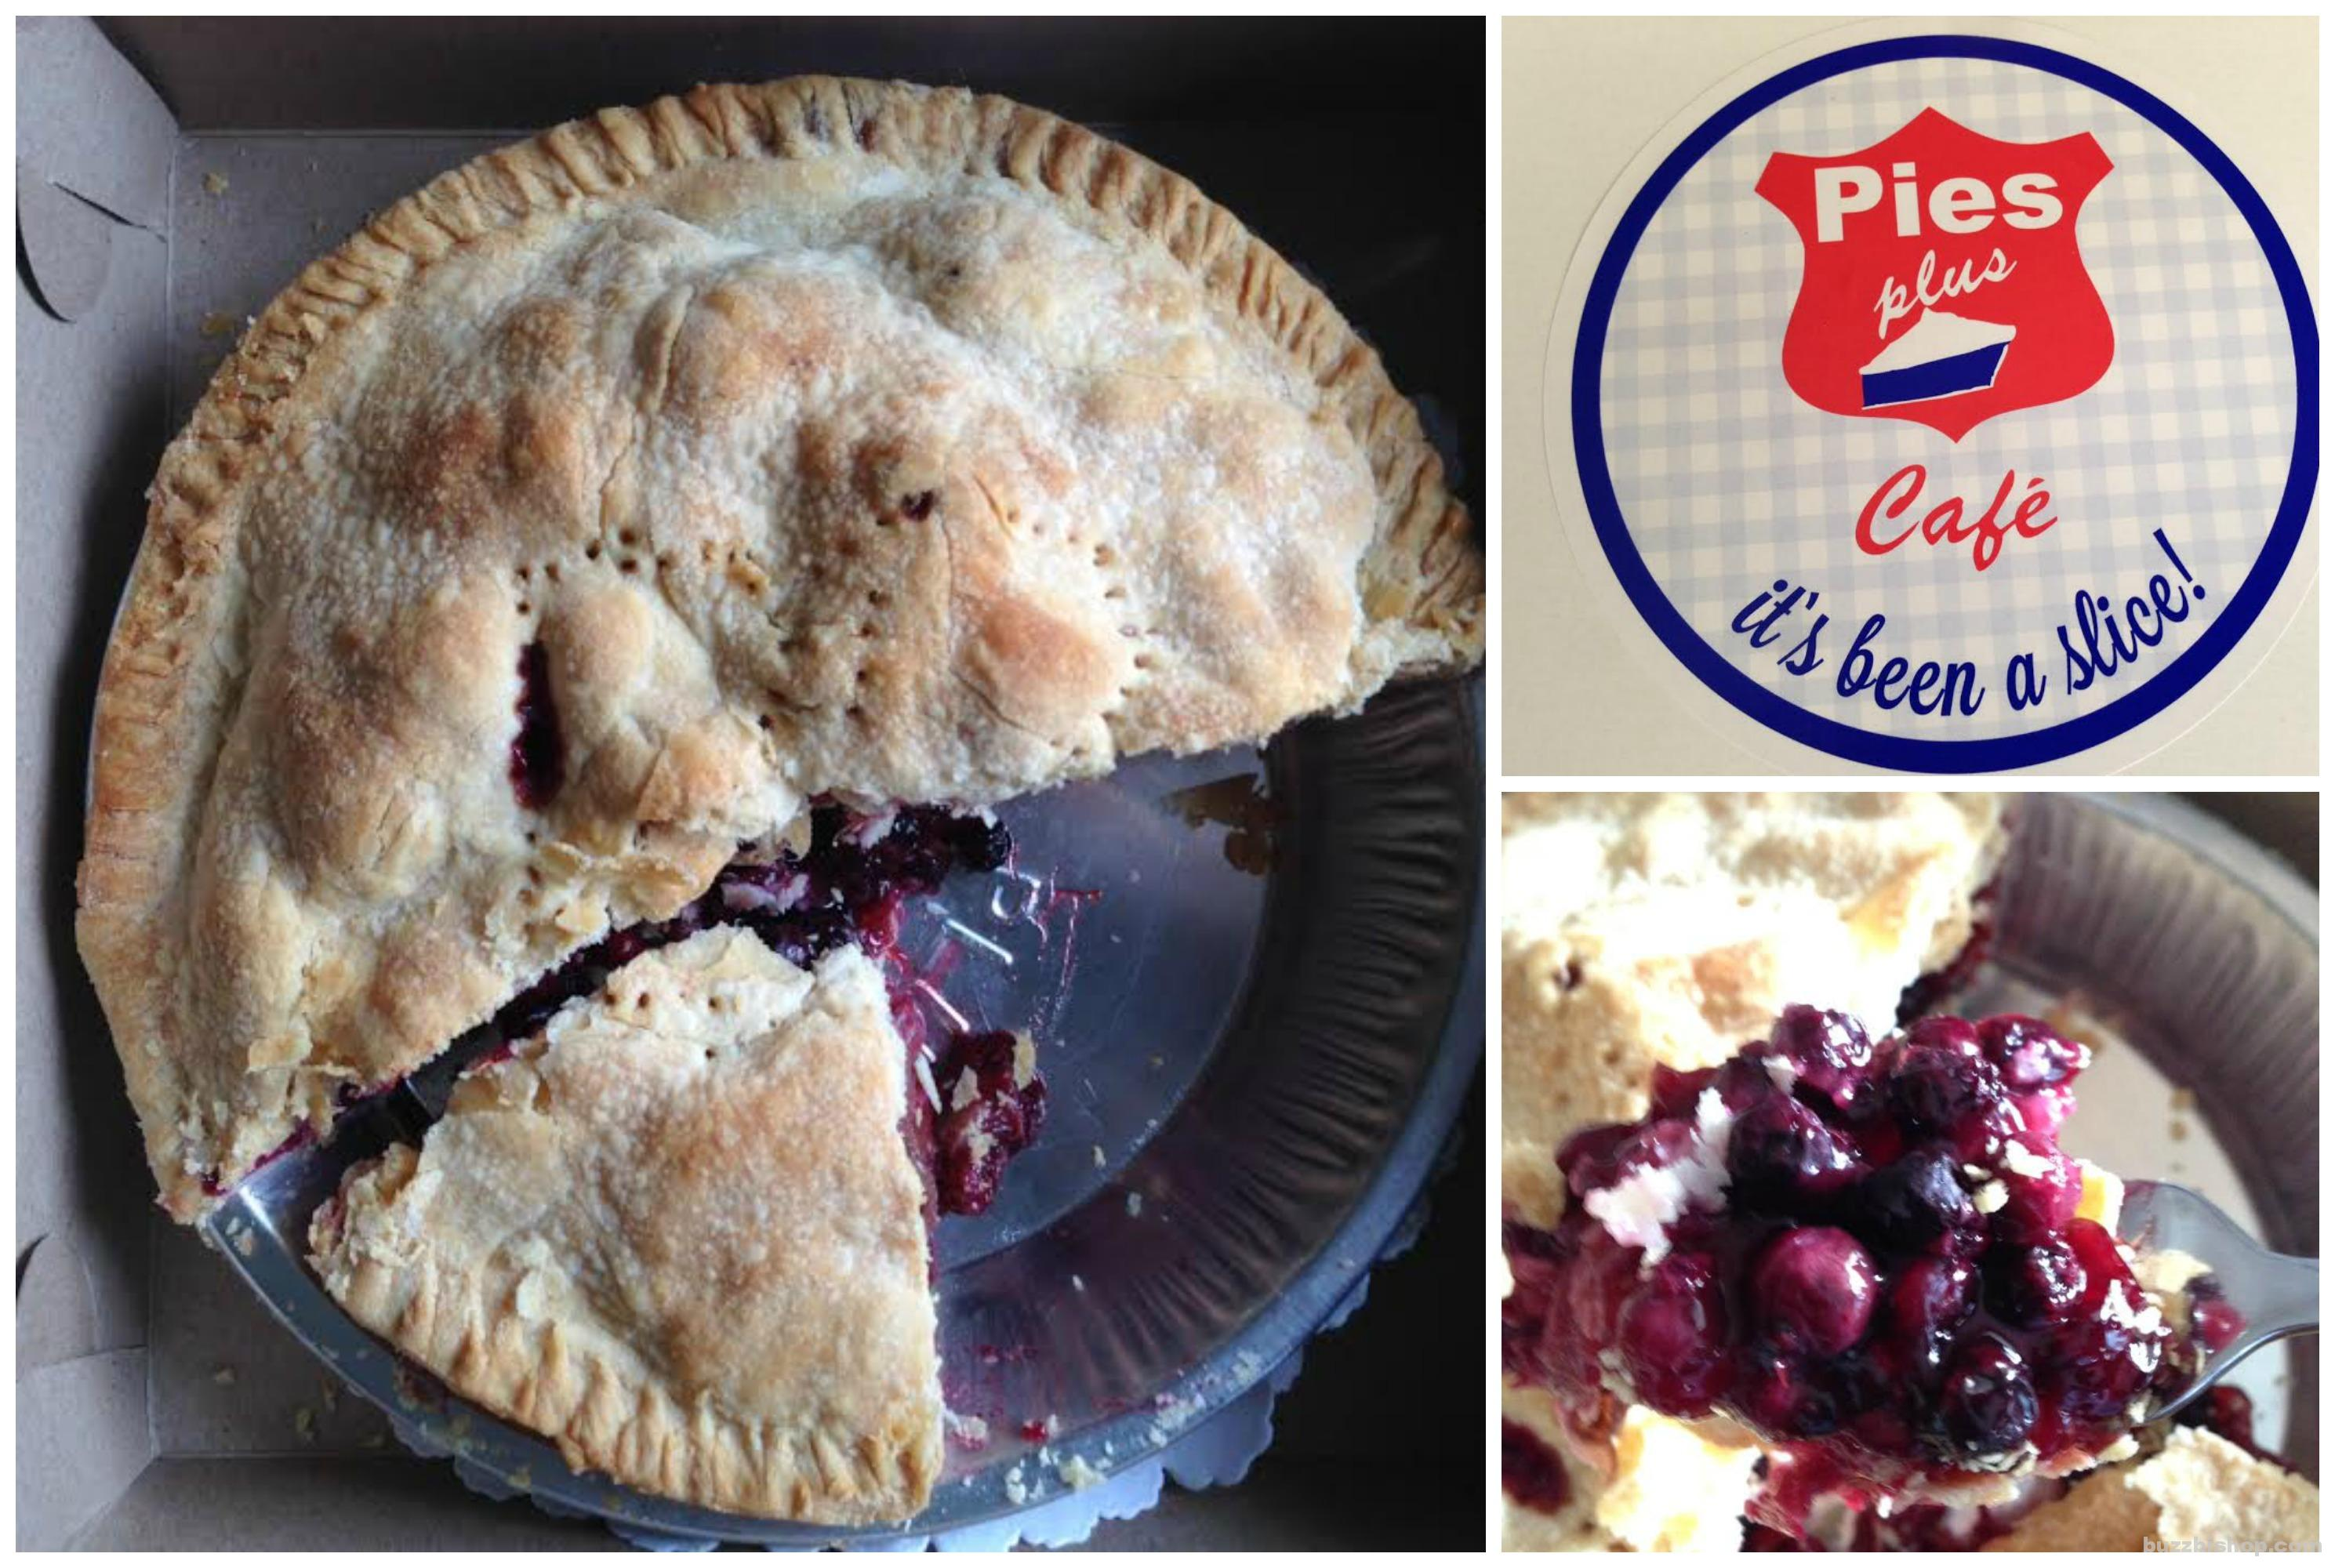 The Best Pie In Calgary Is At Pies Plus